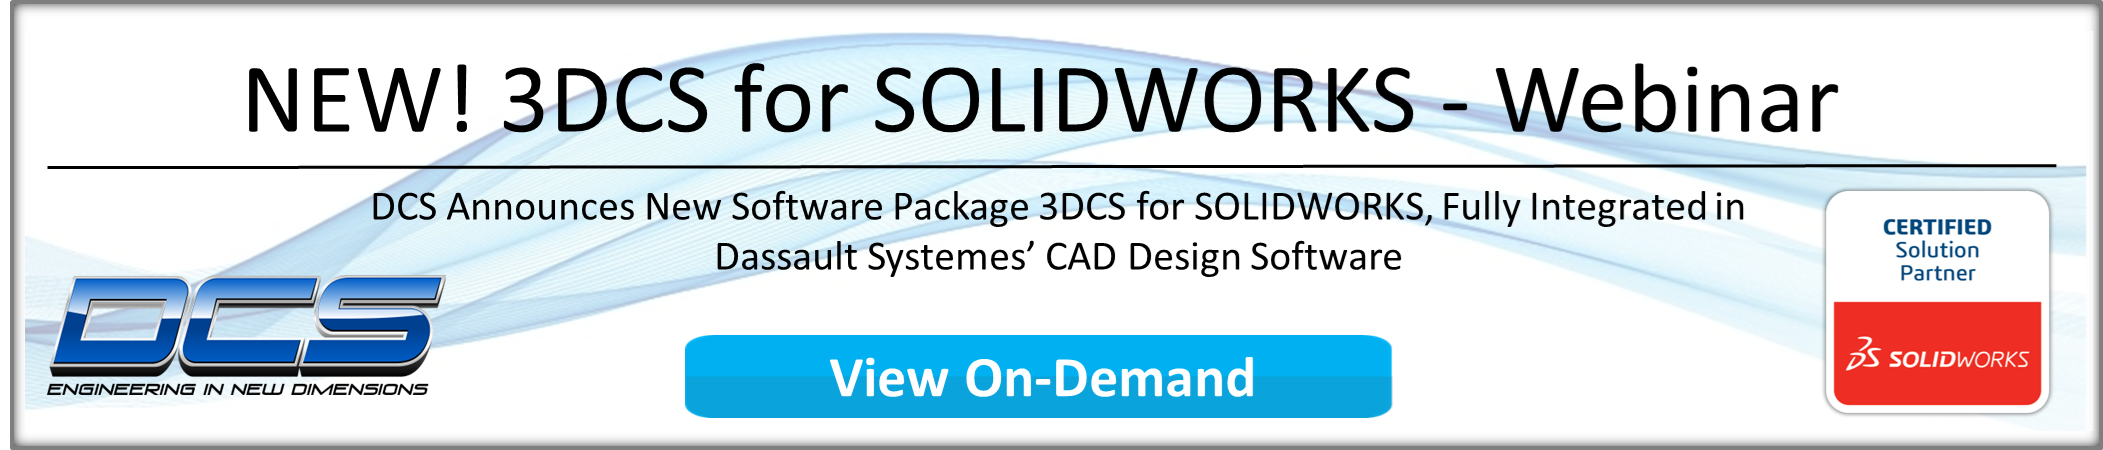 Webinar 3DCS for SOLIDWORKS On-Demand